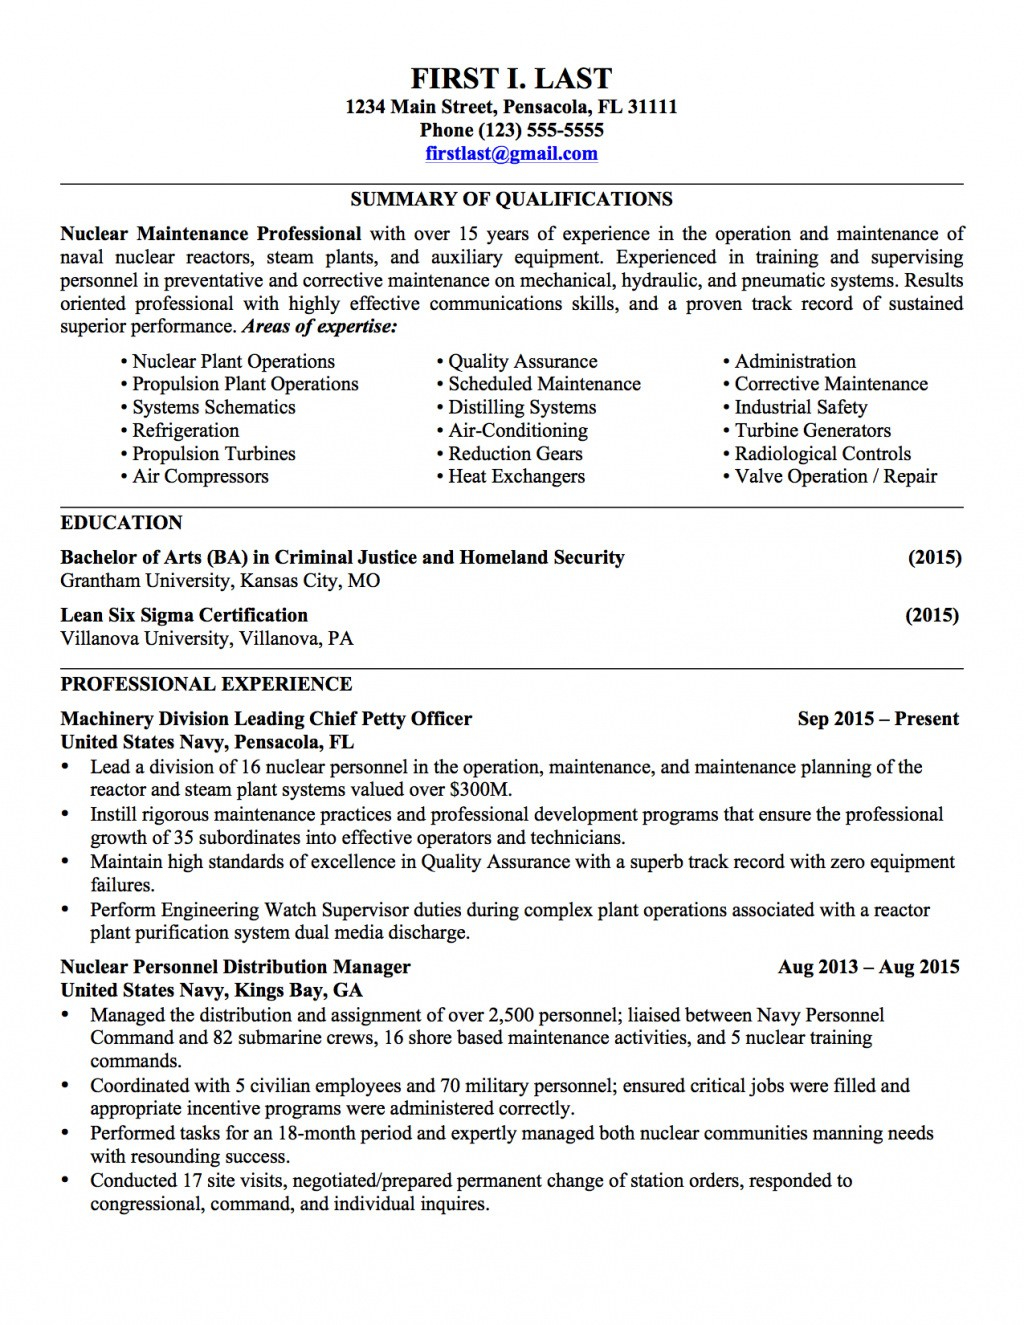 Infantryman Skills Resume - 20 Awesome Military to Civilian Resume Examples